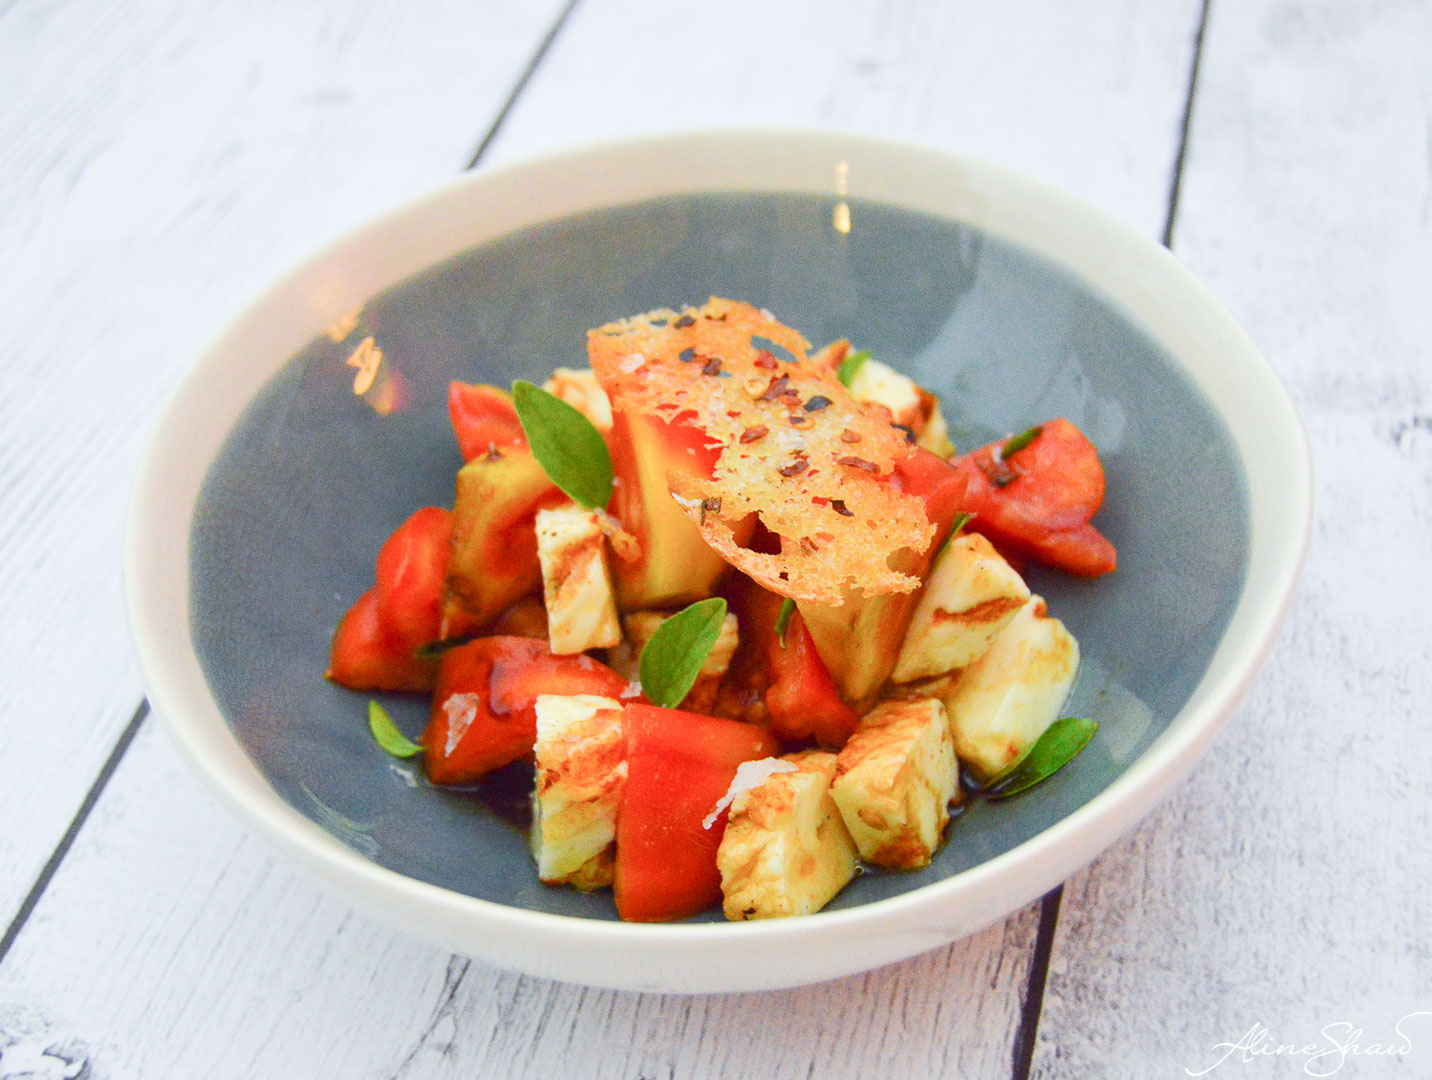 Tomato Salad Recipe with Balsamic Vinegar and grilled Brazilian queijo coalho